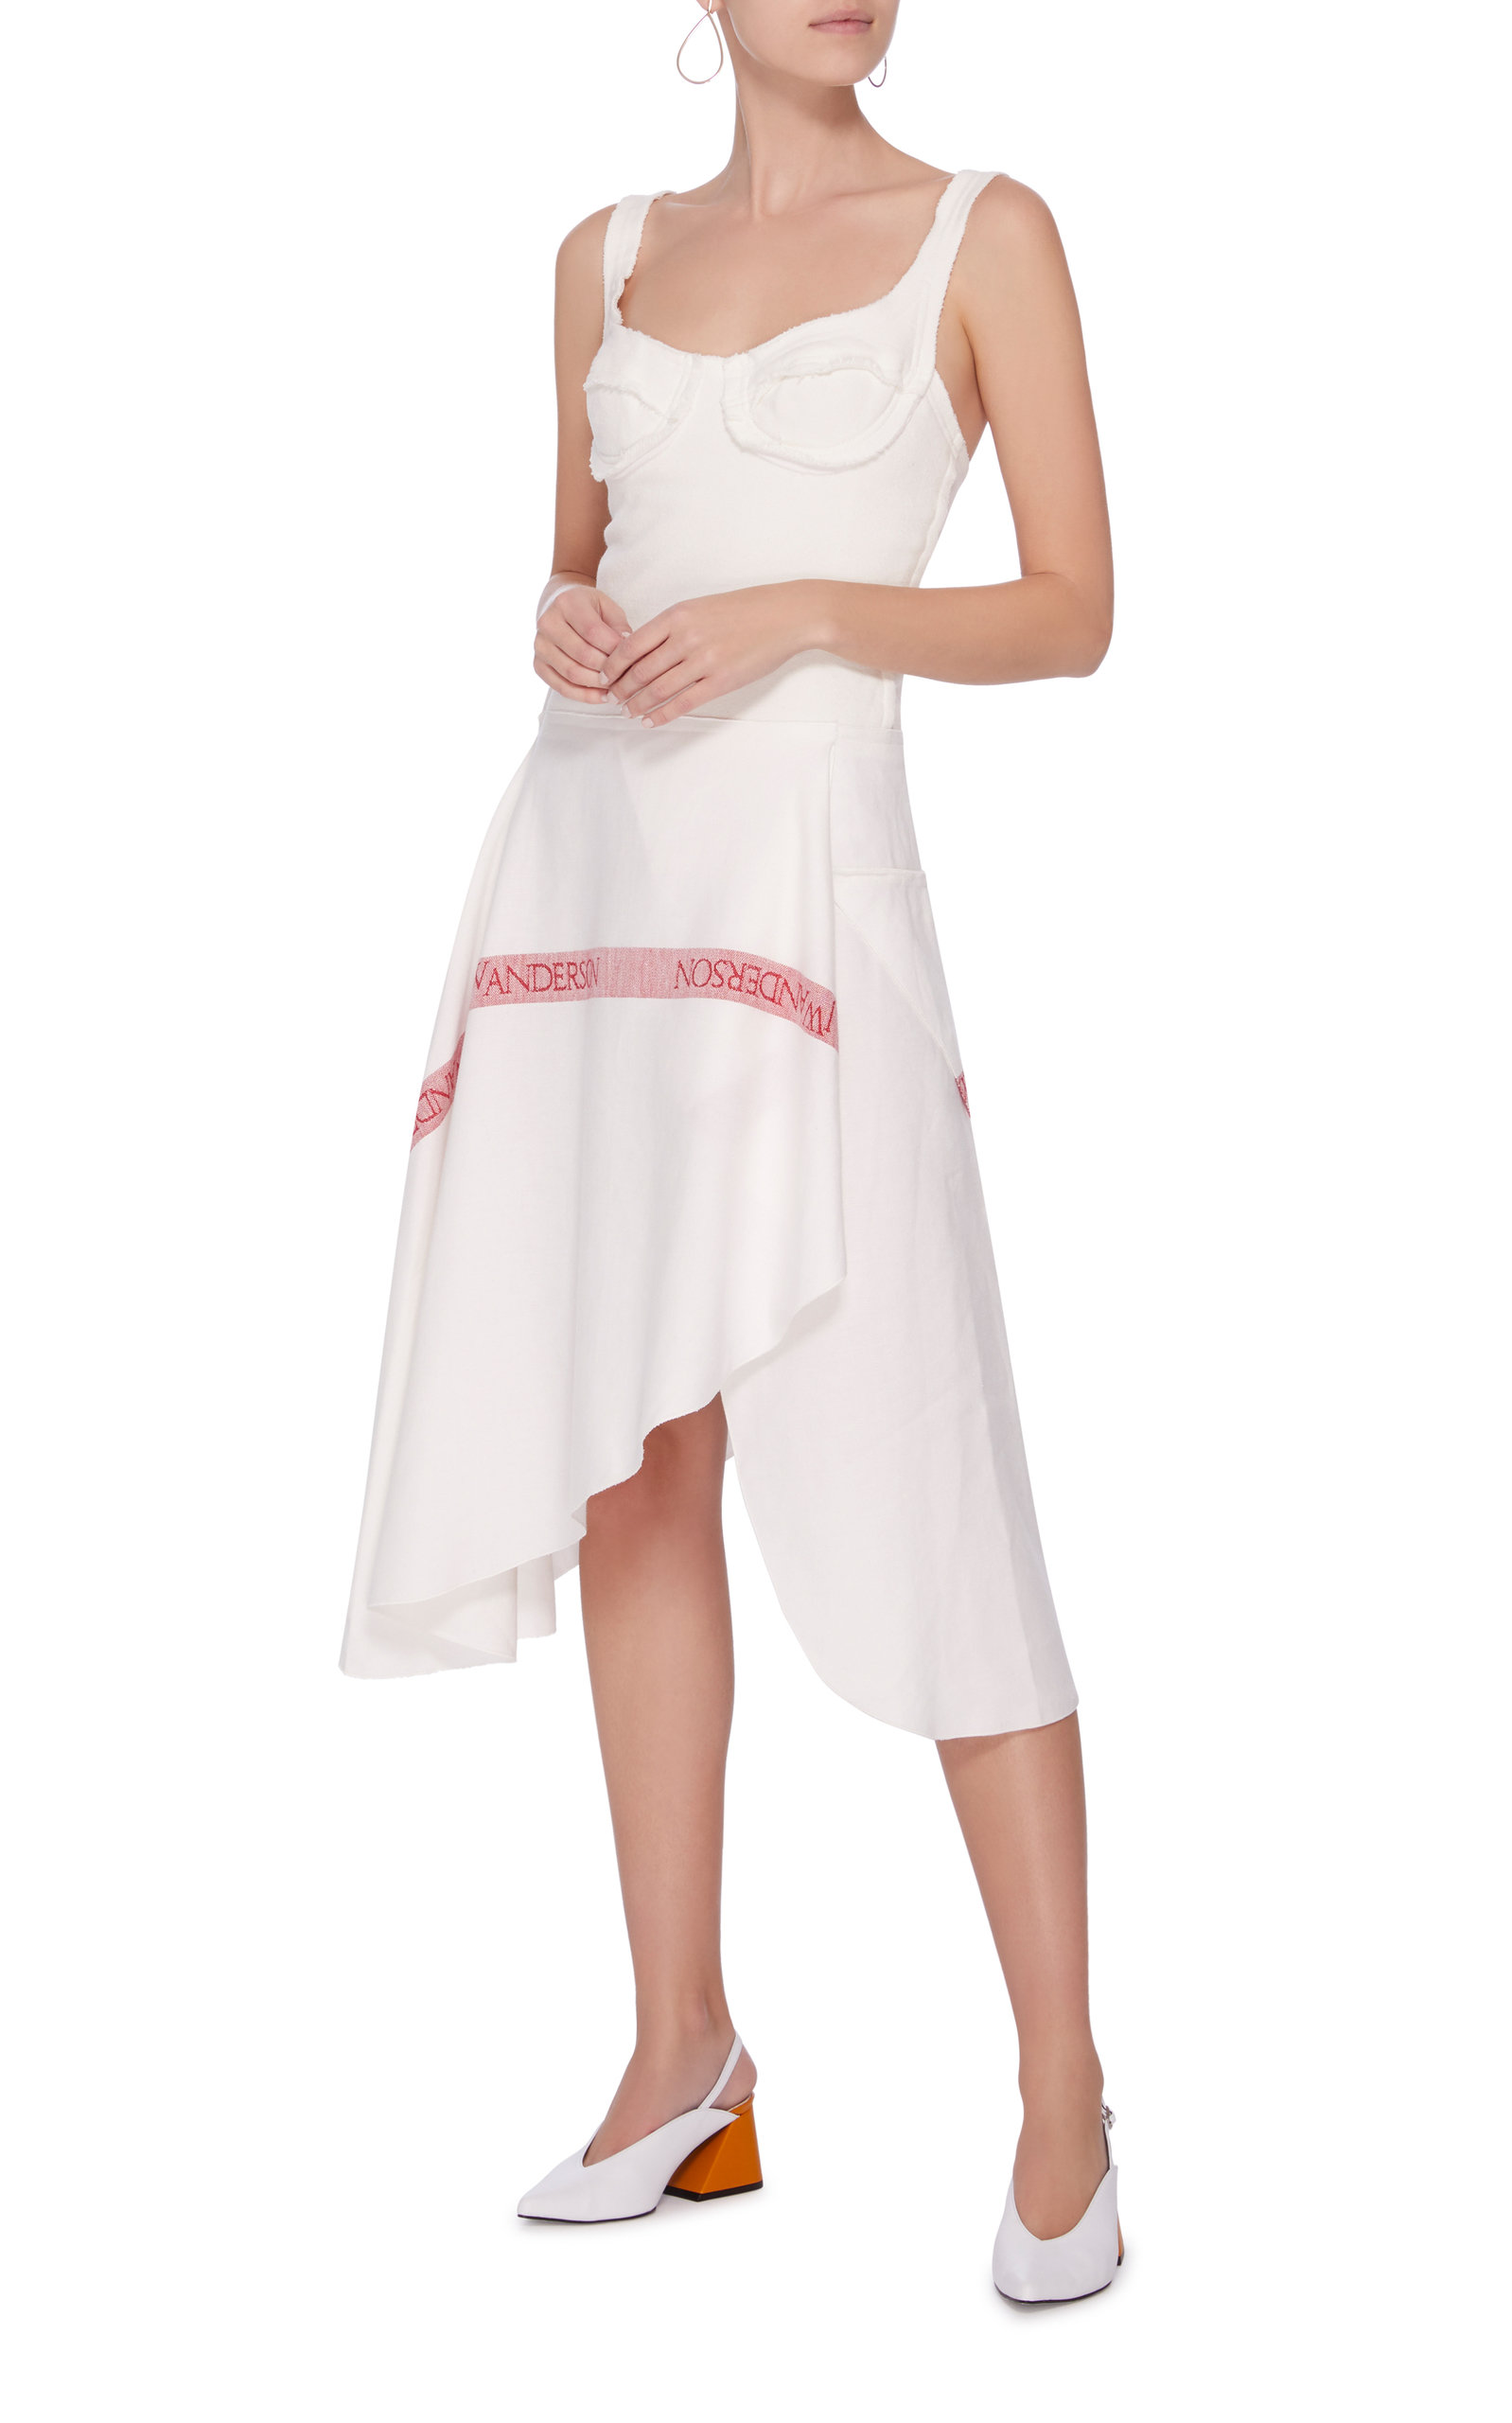 Jersey Bodice Dress With Tea Towel Linen Skirt J.W.Anderson Free Shipping Largest Supplier From China Low Shipping Fee Discount Recommend Wide Range Of Cheap Price l8ri5bPq5